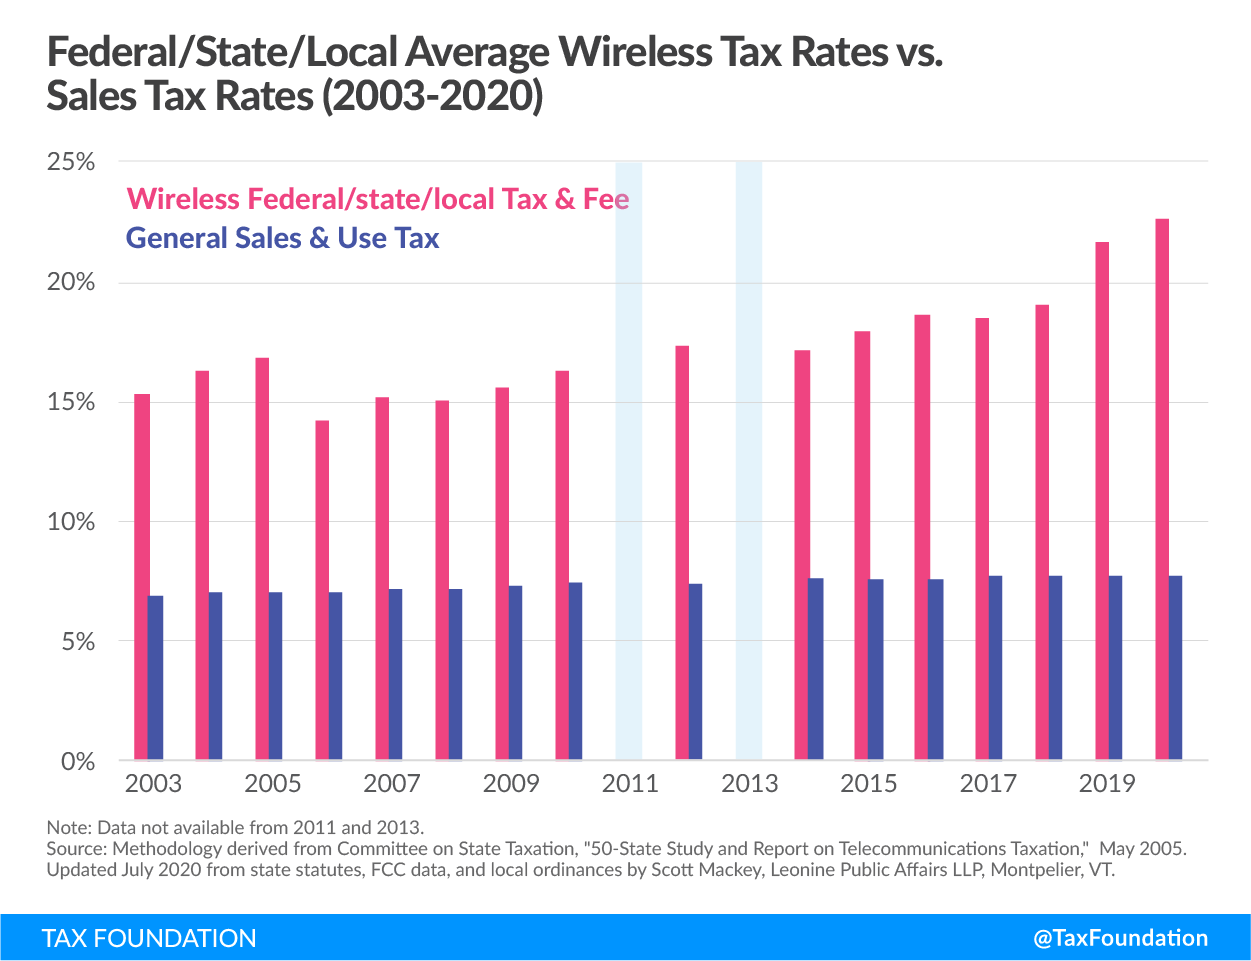 Federal/state/local average wireless tax rates vs. sales tax rates (2003-2020). Wireless taxes, cell phone tax rates, cell phone surcharges, cell phone bill